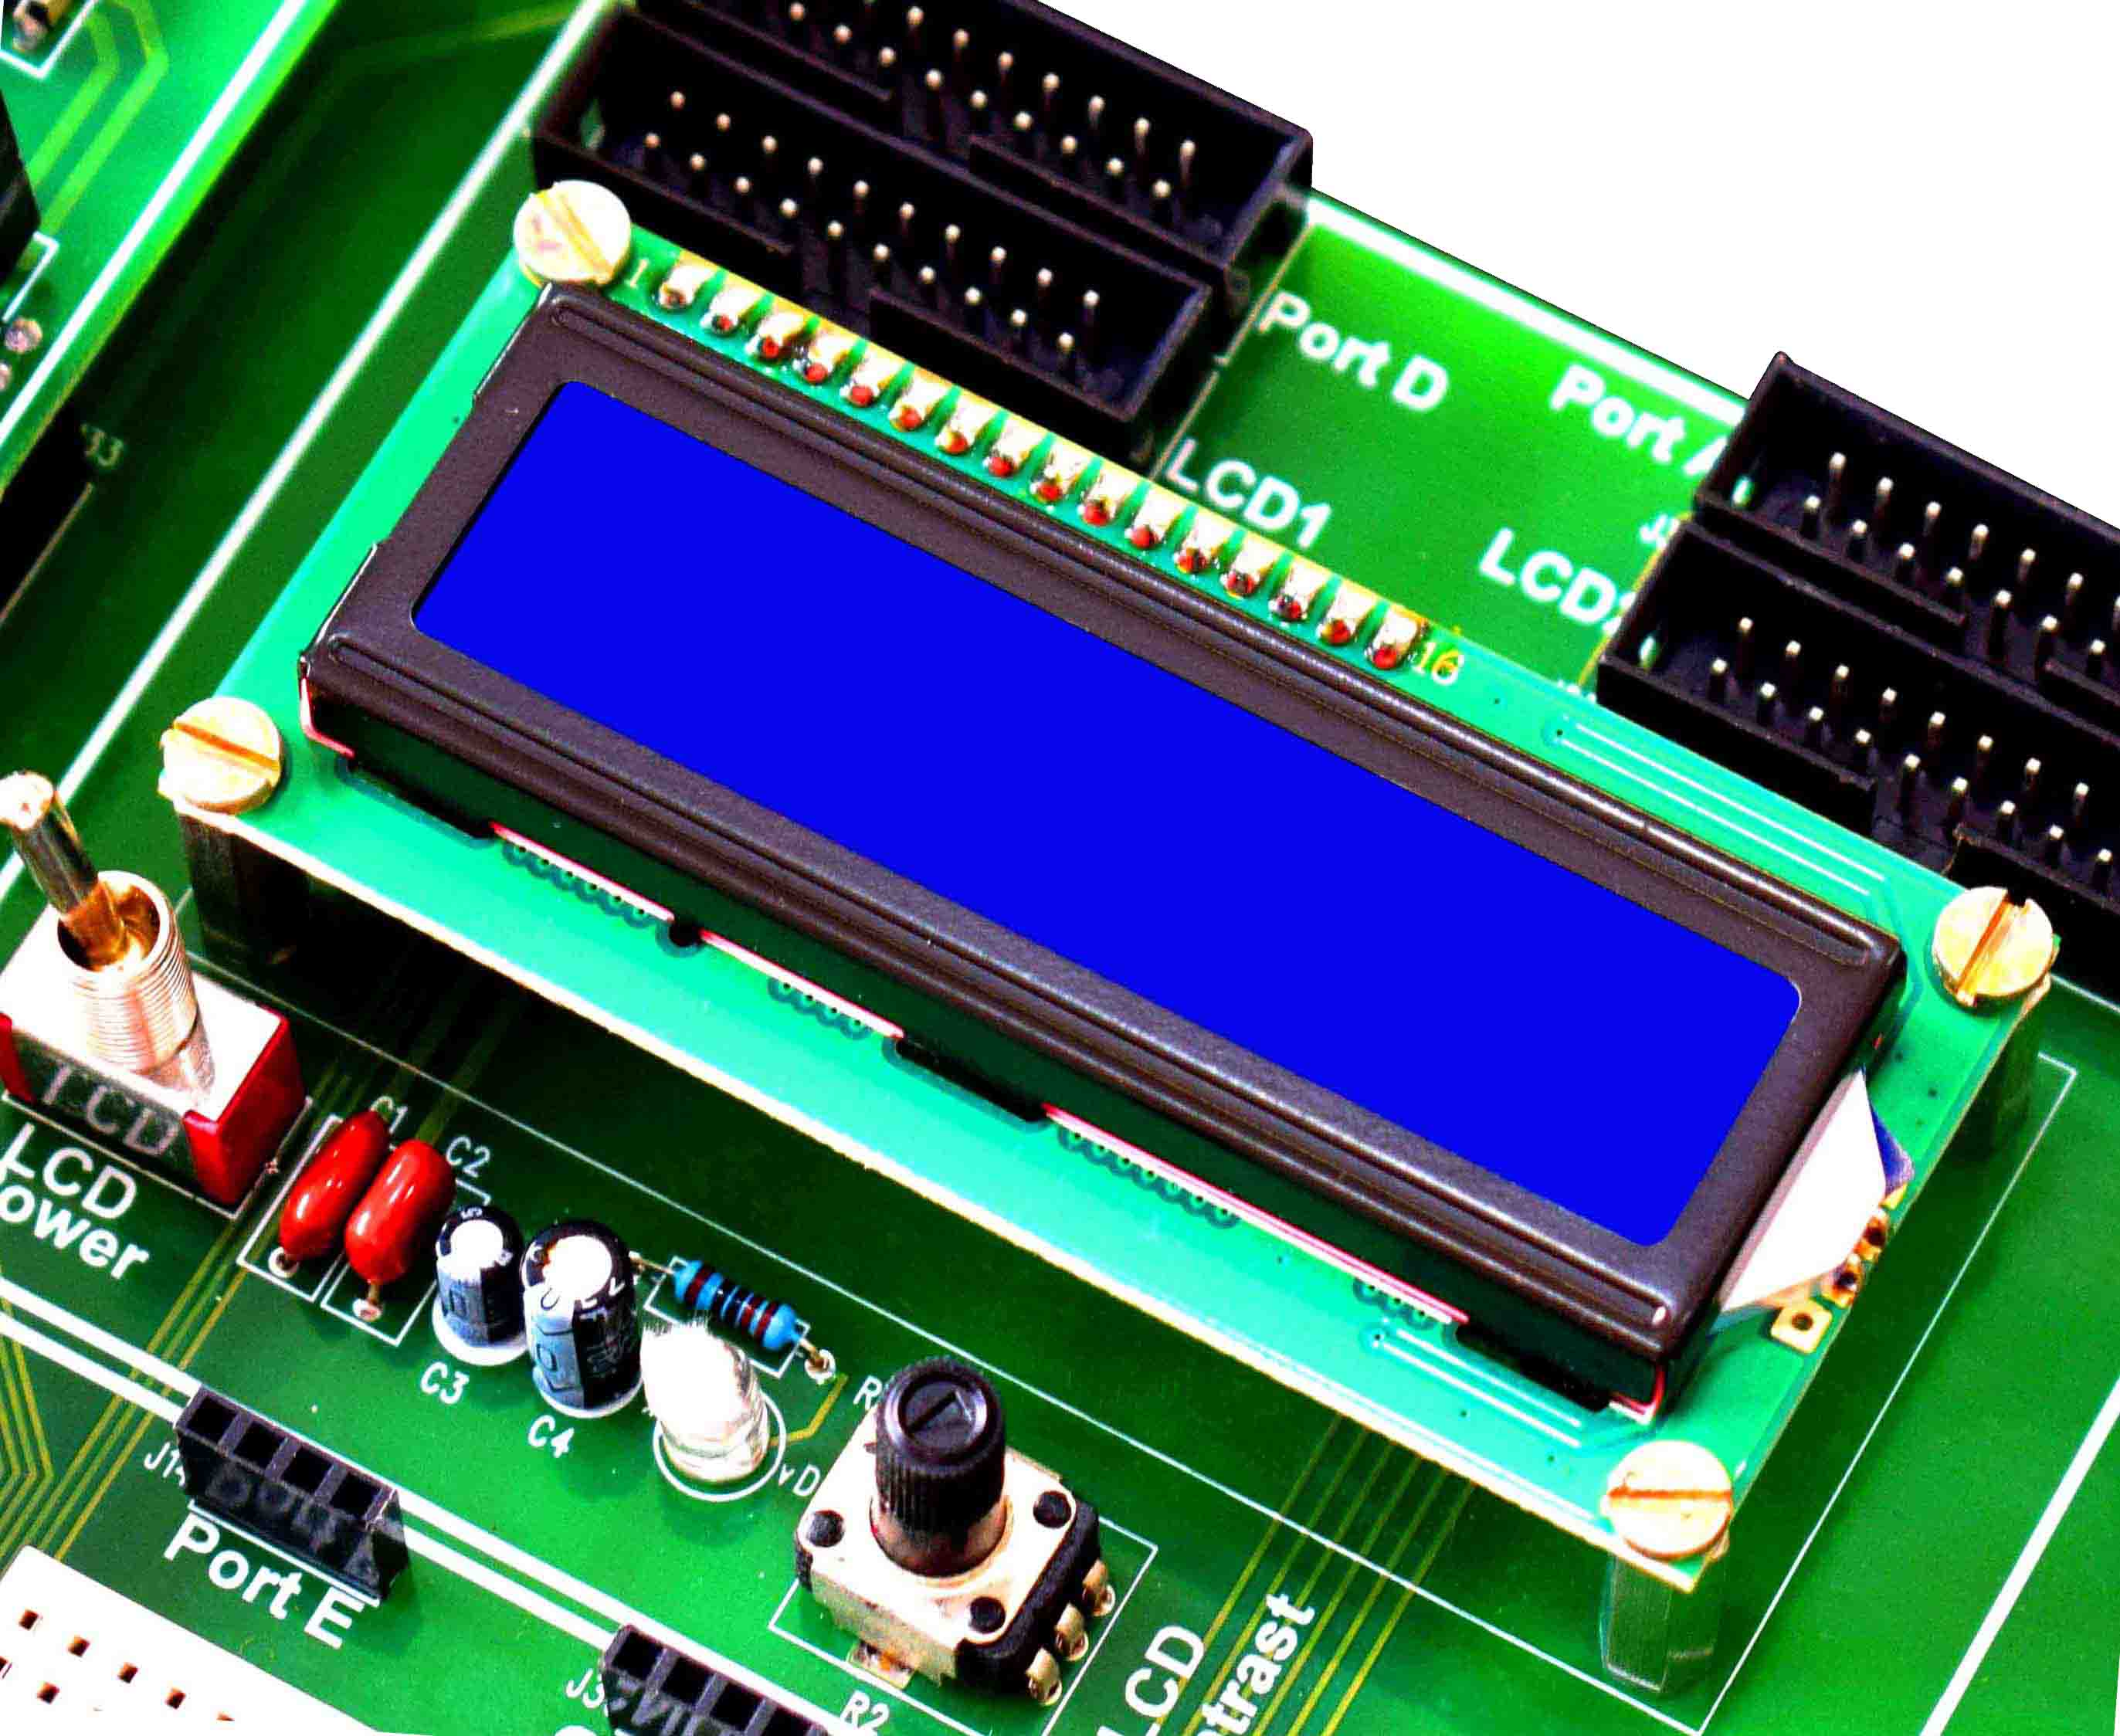 OpenLab_connection-lcd